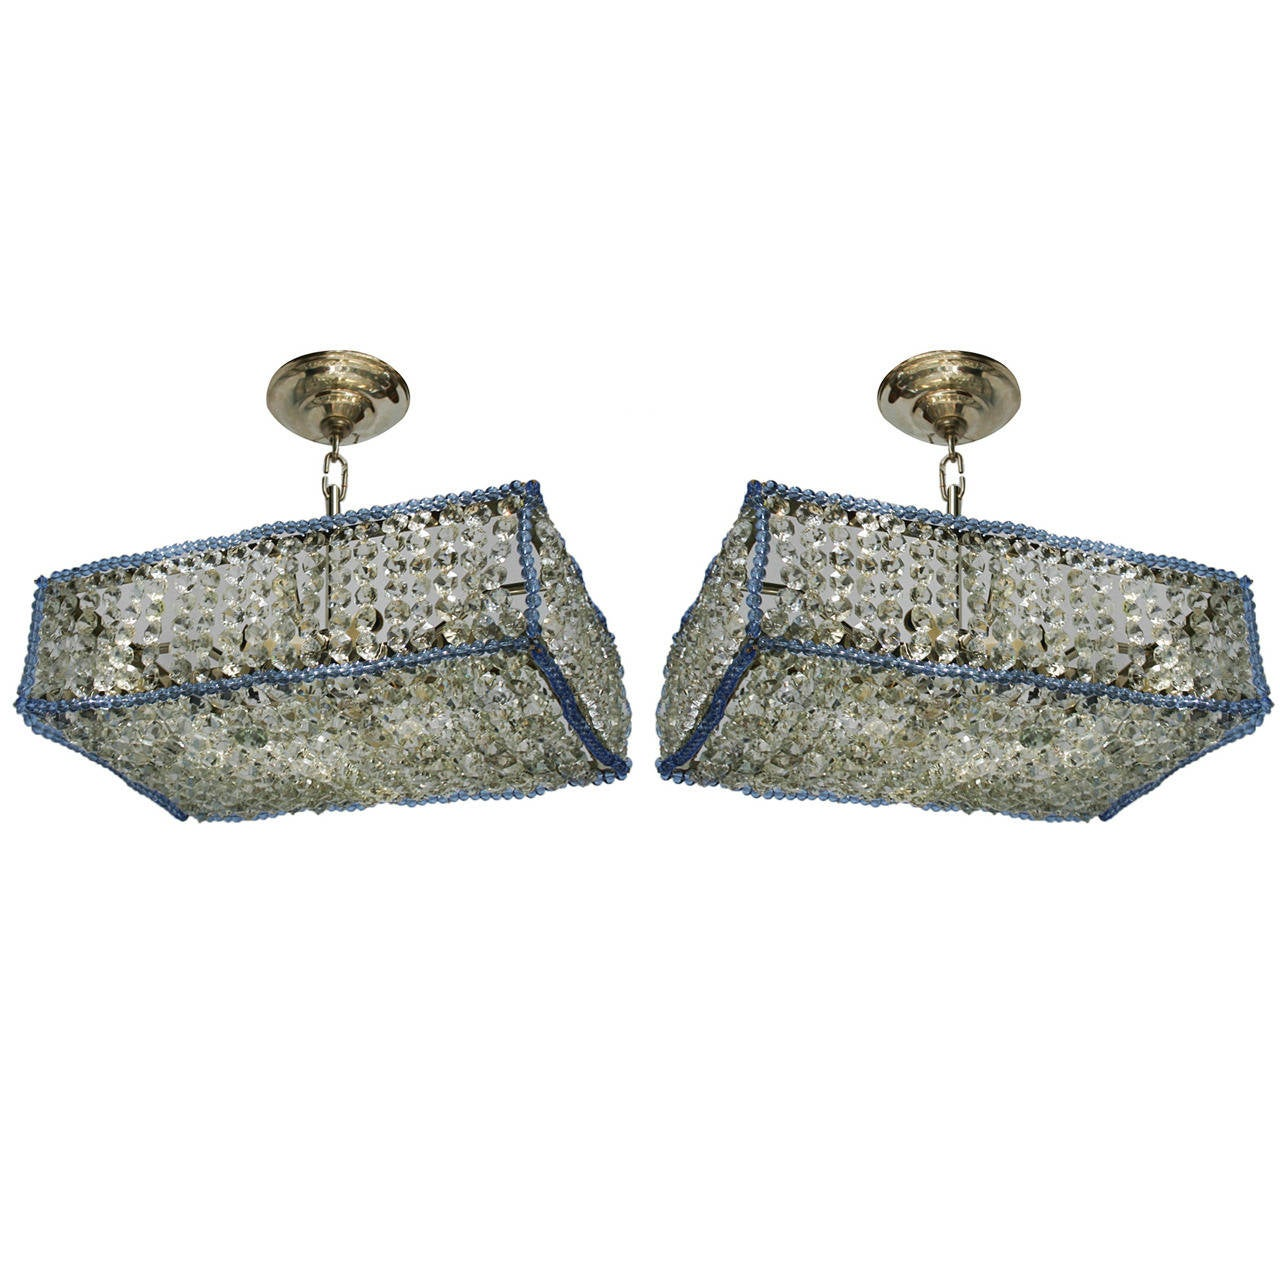 Pair Moderne Rectangular Crystal Fixtures For Sale At 1stdibs